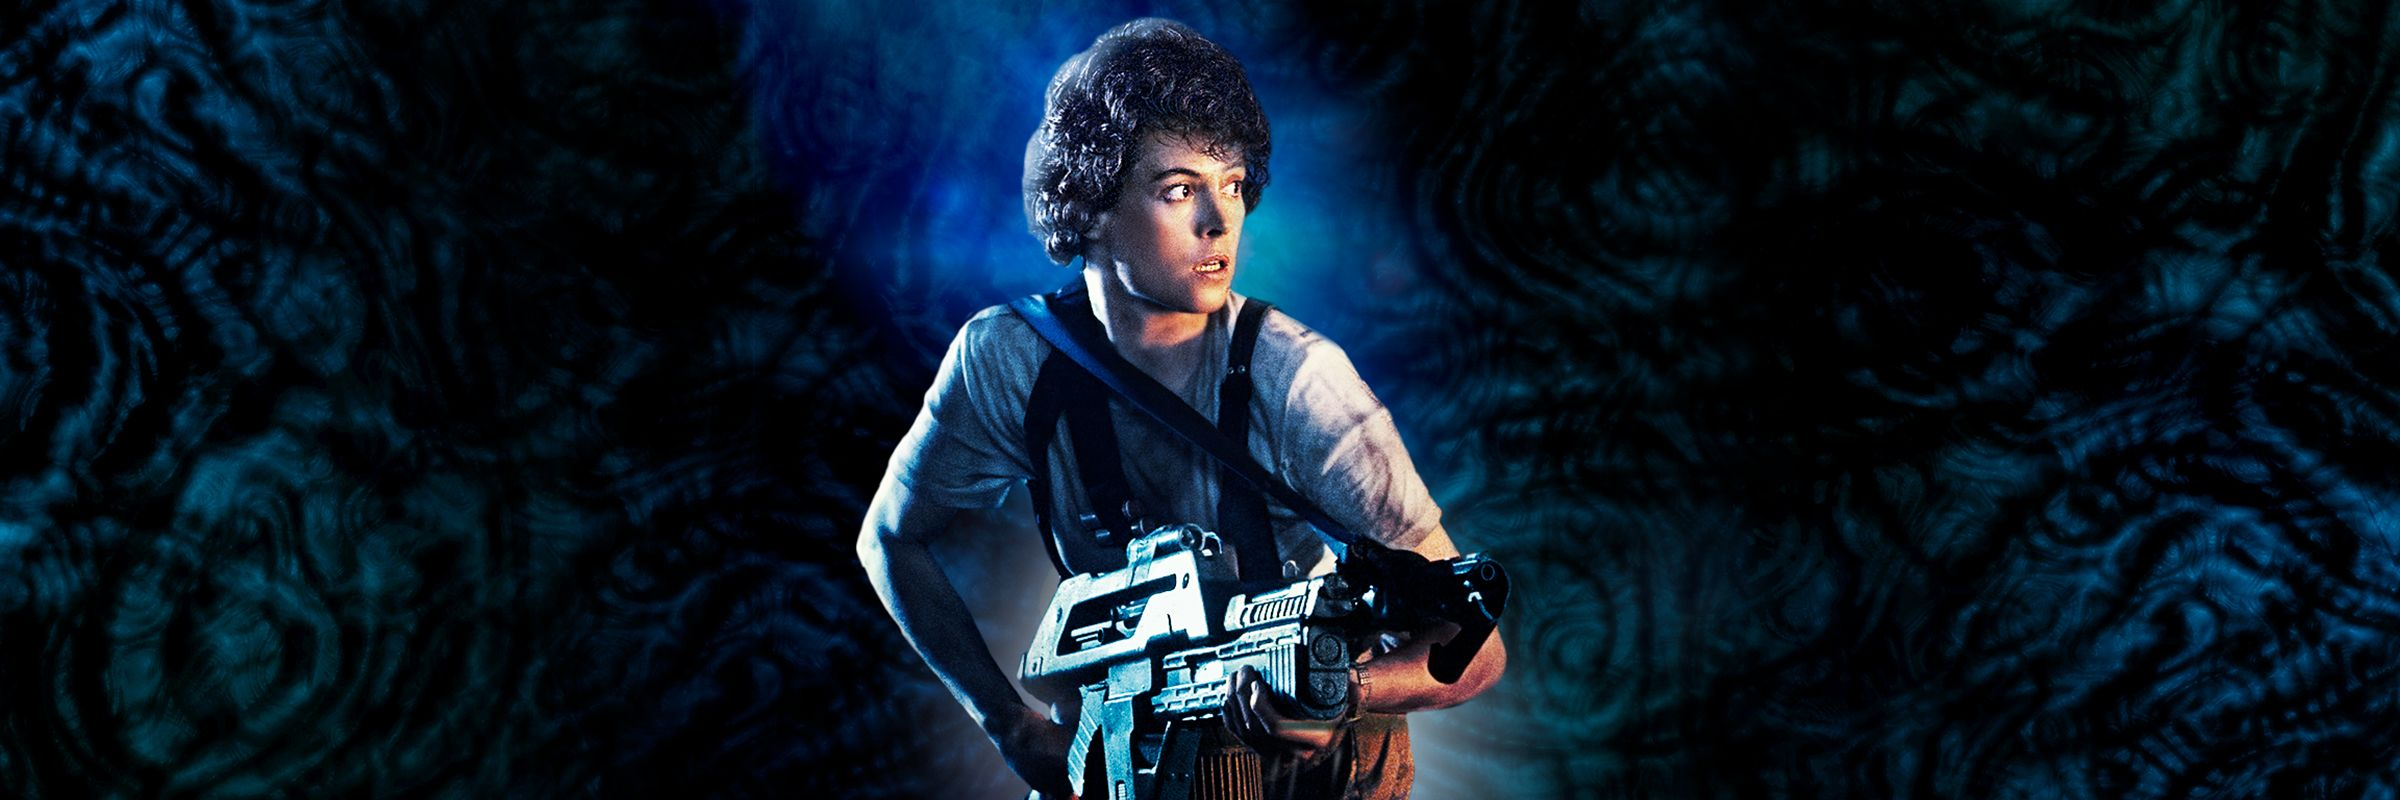 Aliens (Special Edition) | Full Movie | Movies Anywhere